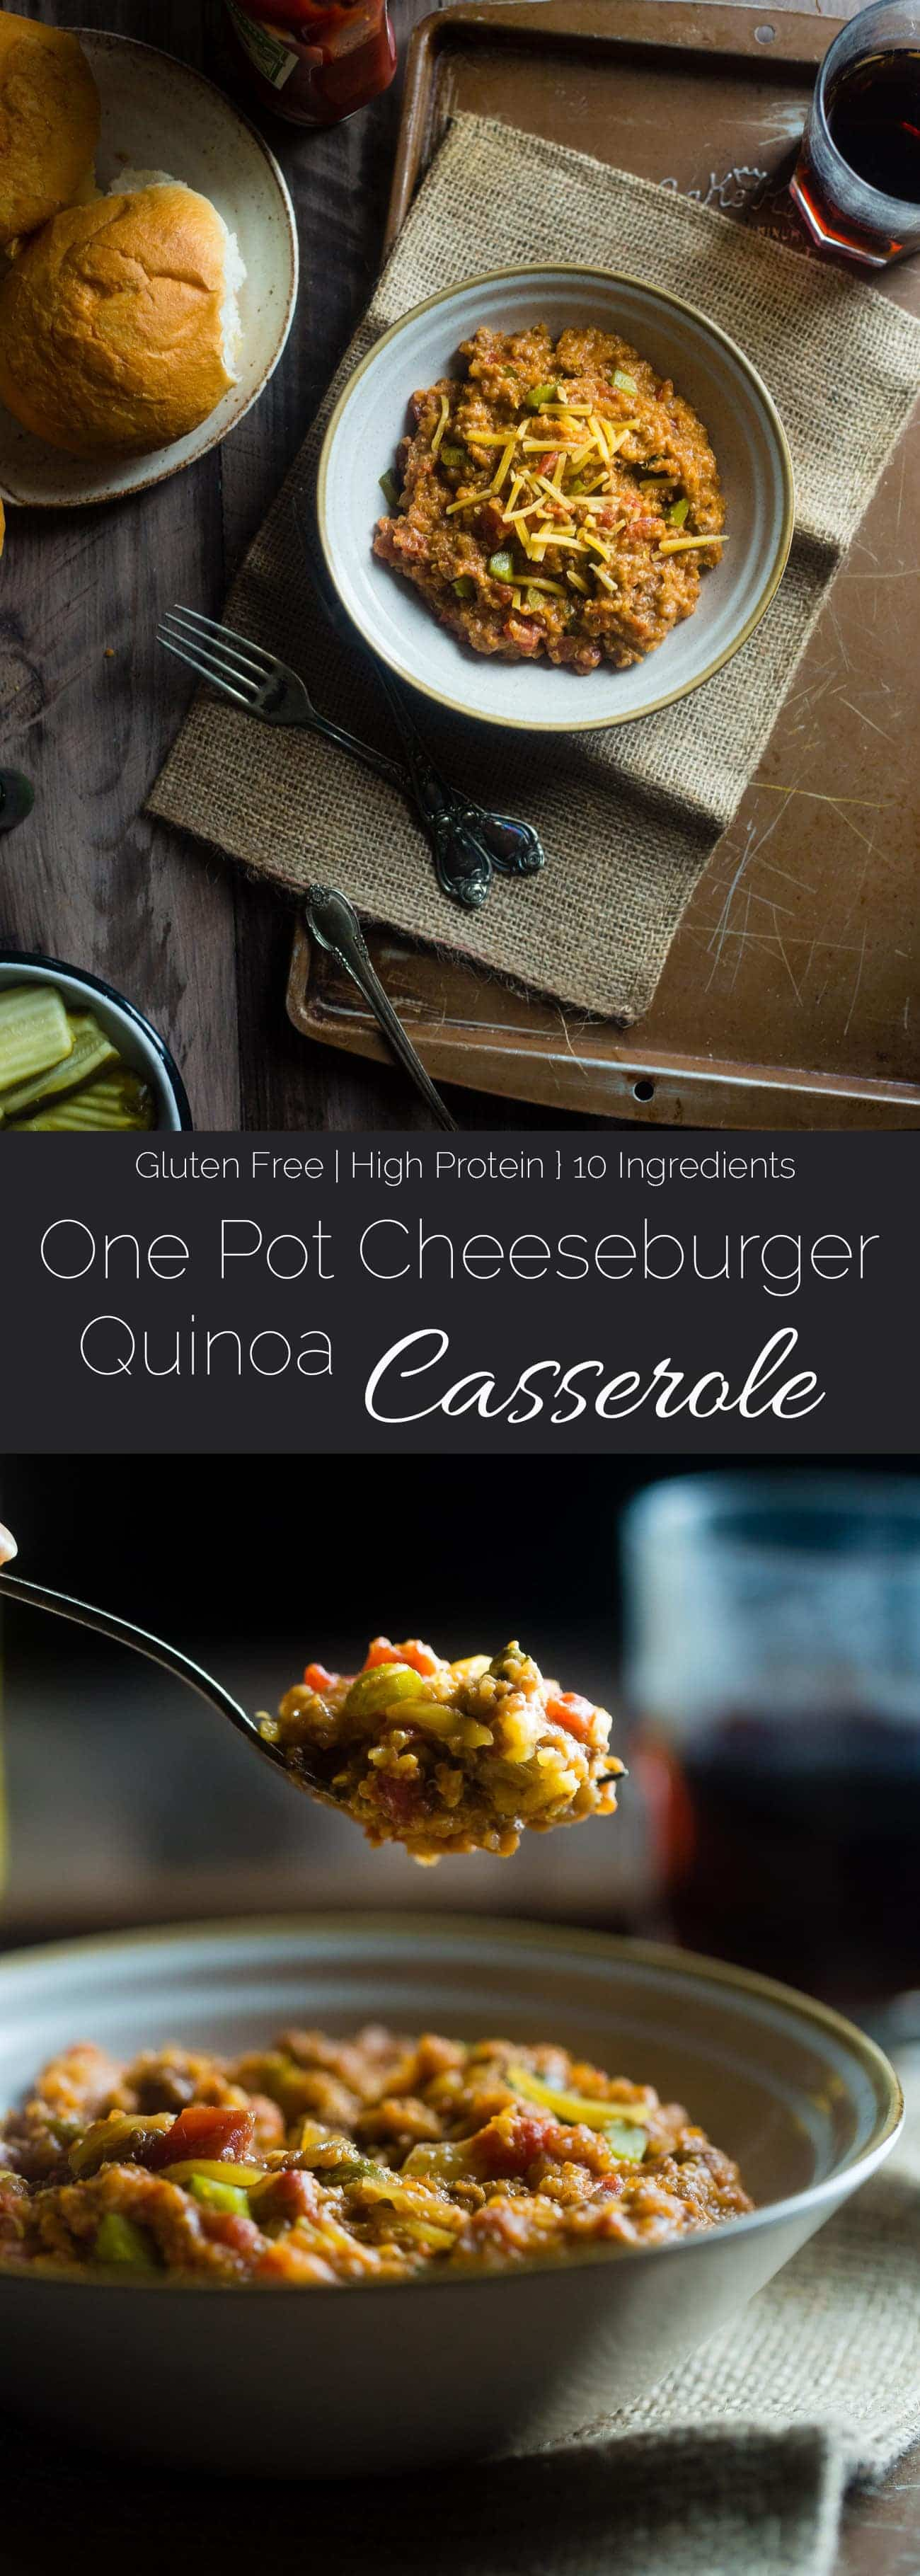 Cheeseburger Quinoa Casserole - This easy, one-pot cheeseburger casserole has all the cheeseburger taste you love but in healthy, gluten free weeknight dinner form! It's under 300 calories too! | Foodfaithfitness.com | @FoodFaithFit